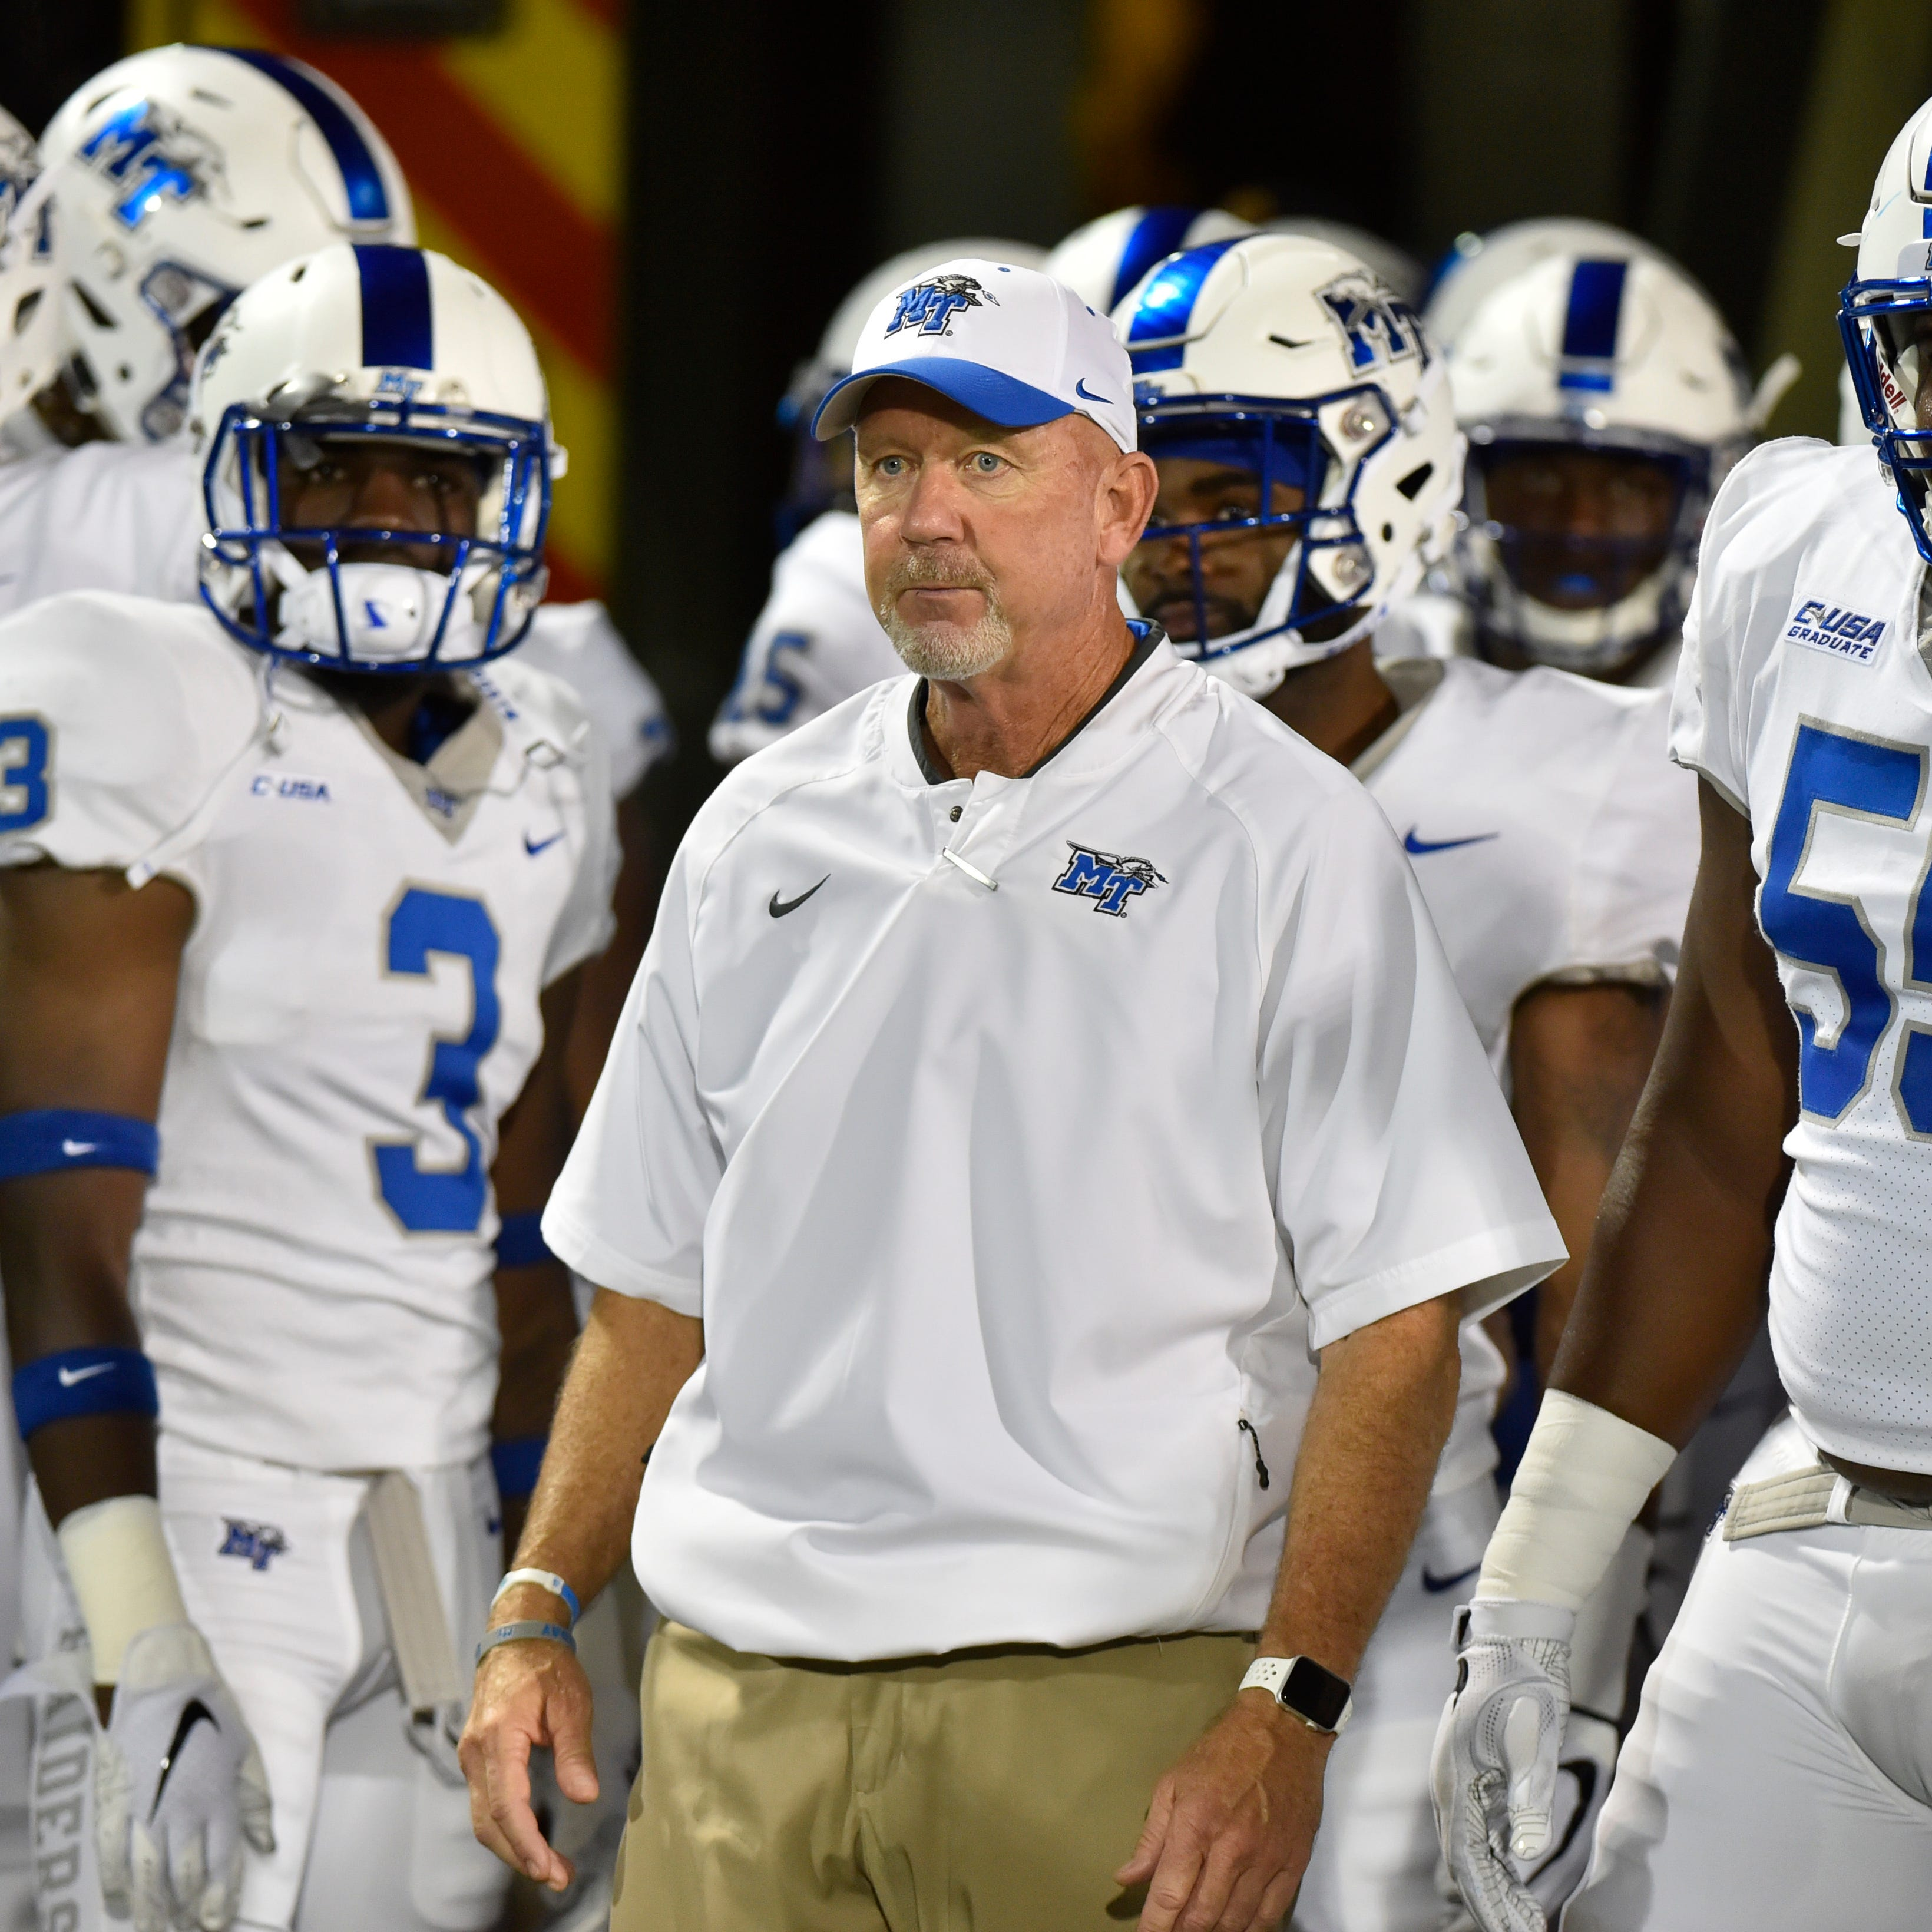 MTSU football vs. Charlotte: Five things to watch